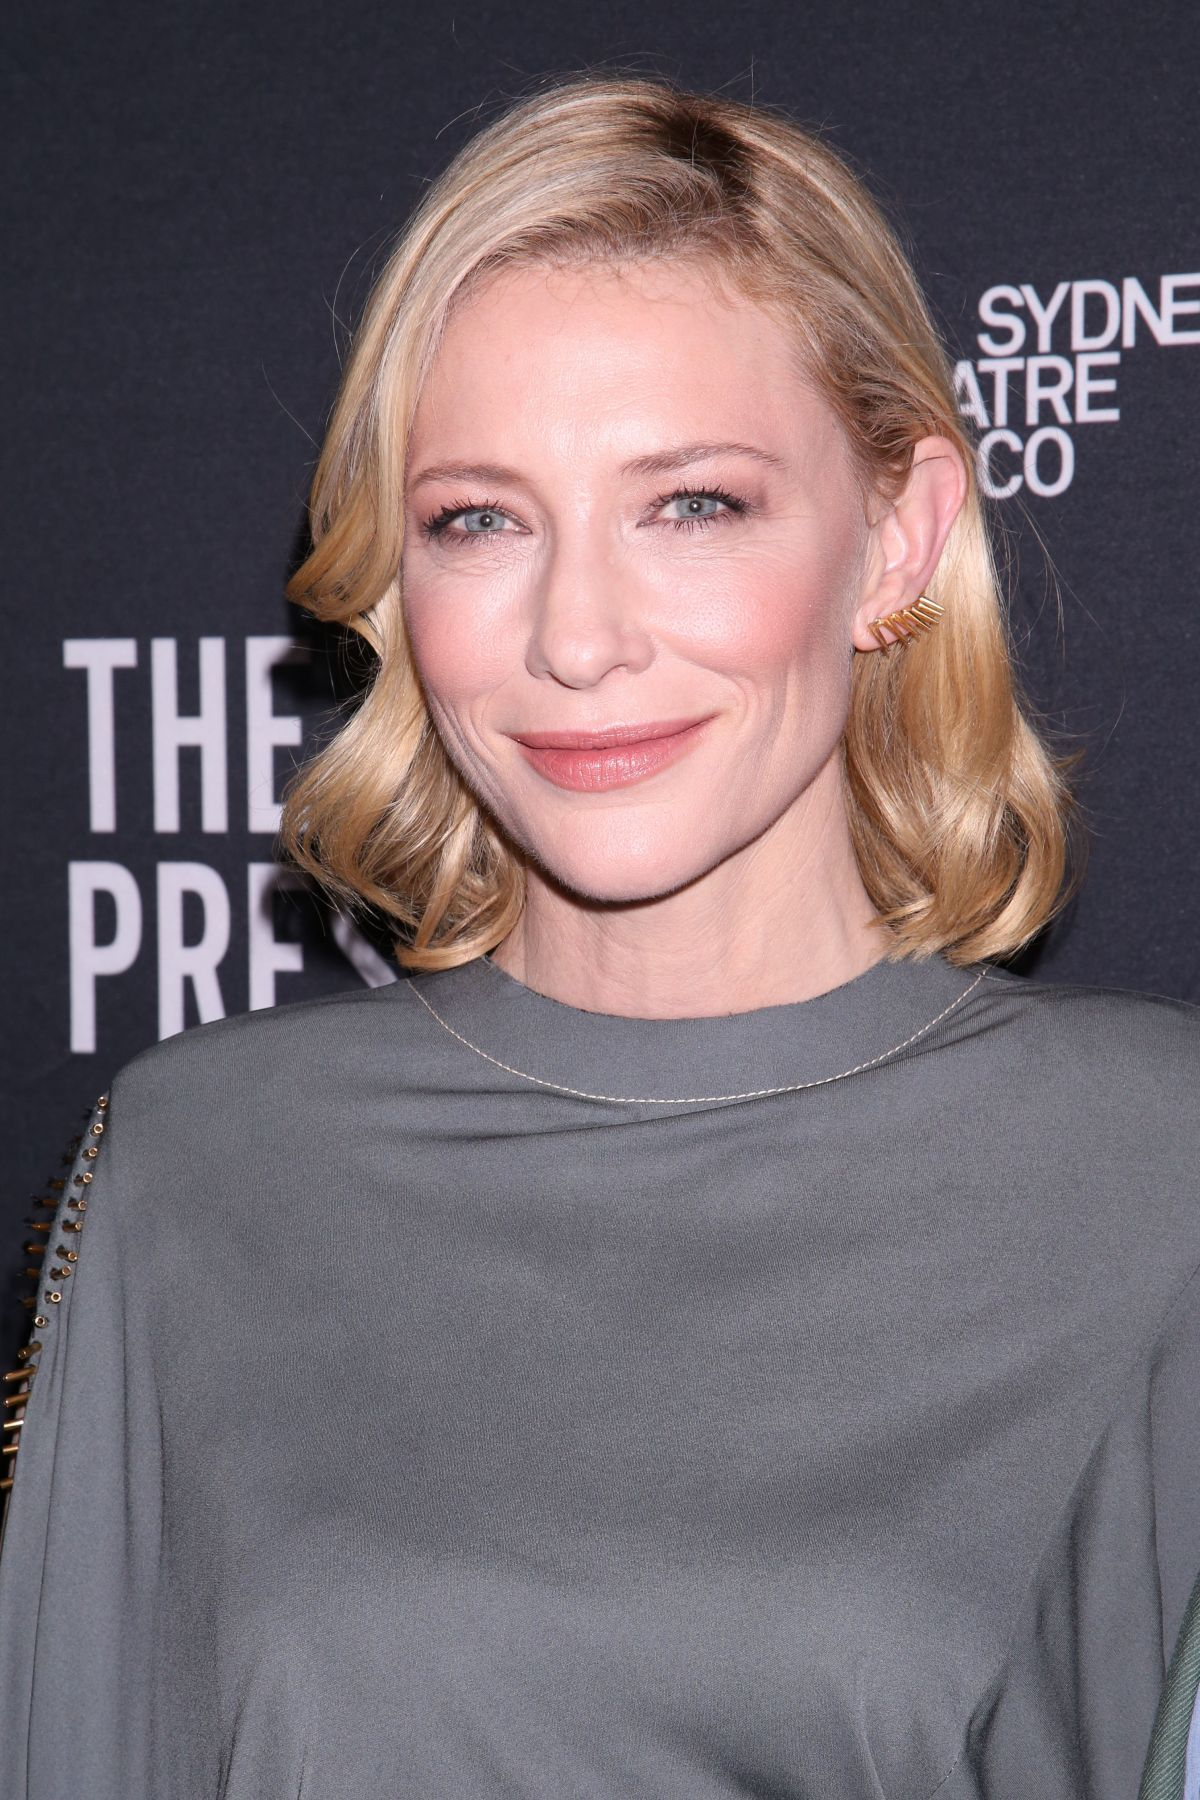 Cate Blanchett Archives - Page 2 of 14 - HawtCelebs ...